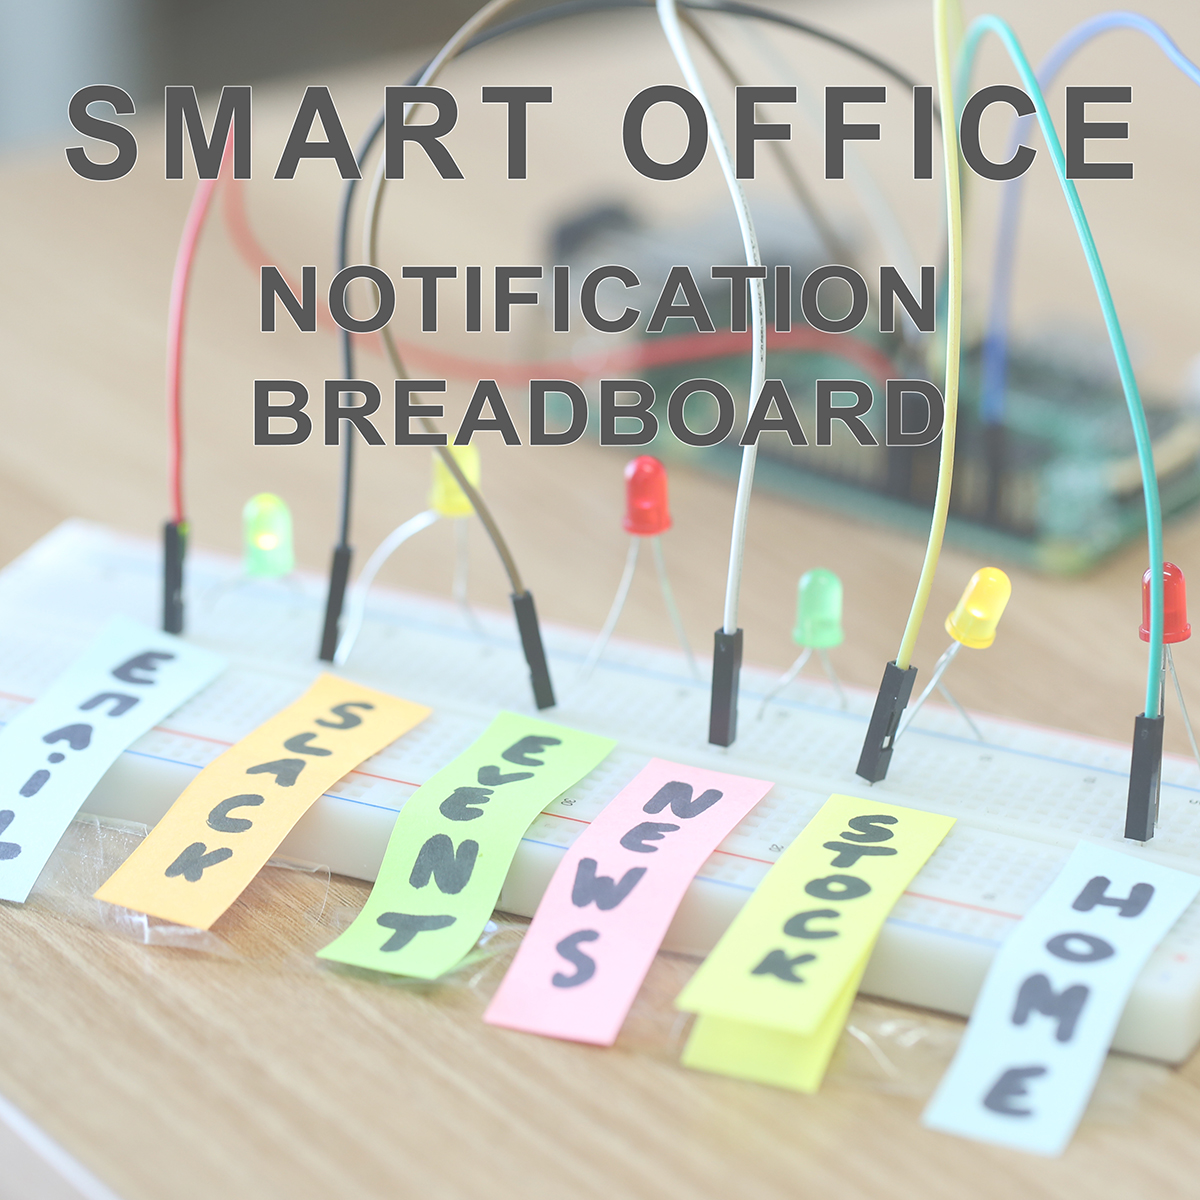 Picture of Smart Office - Notification Breadboard